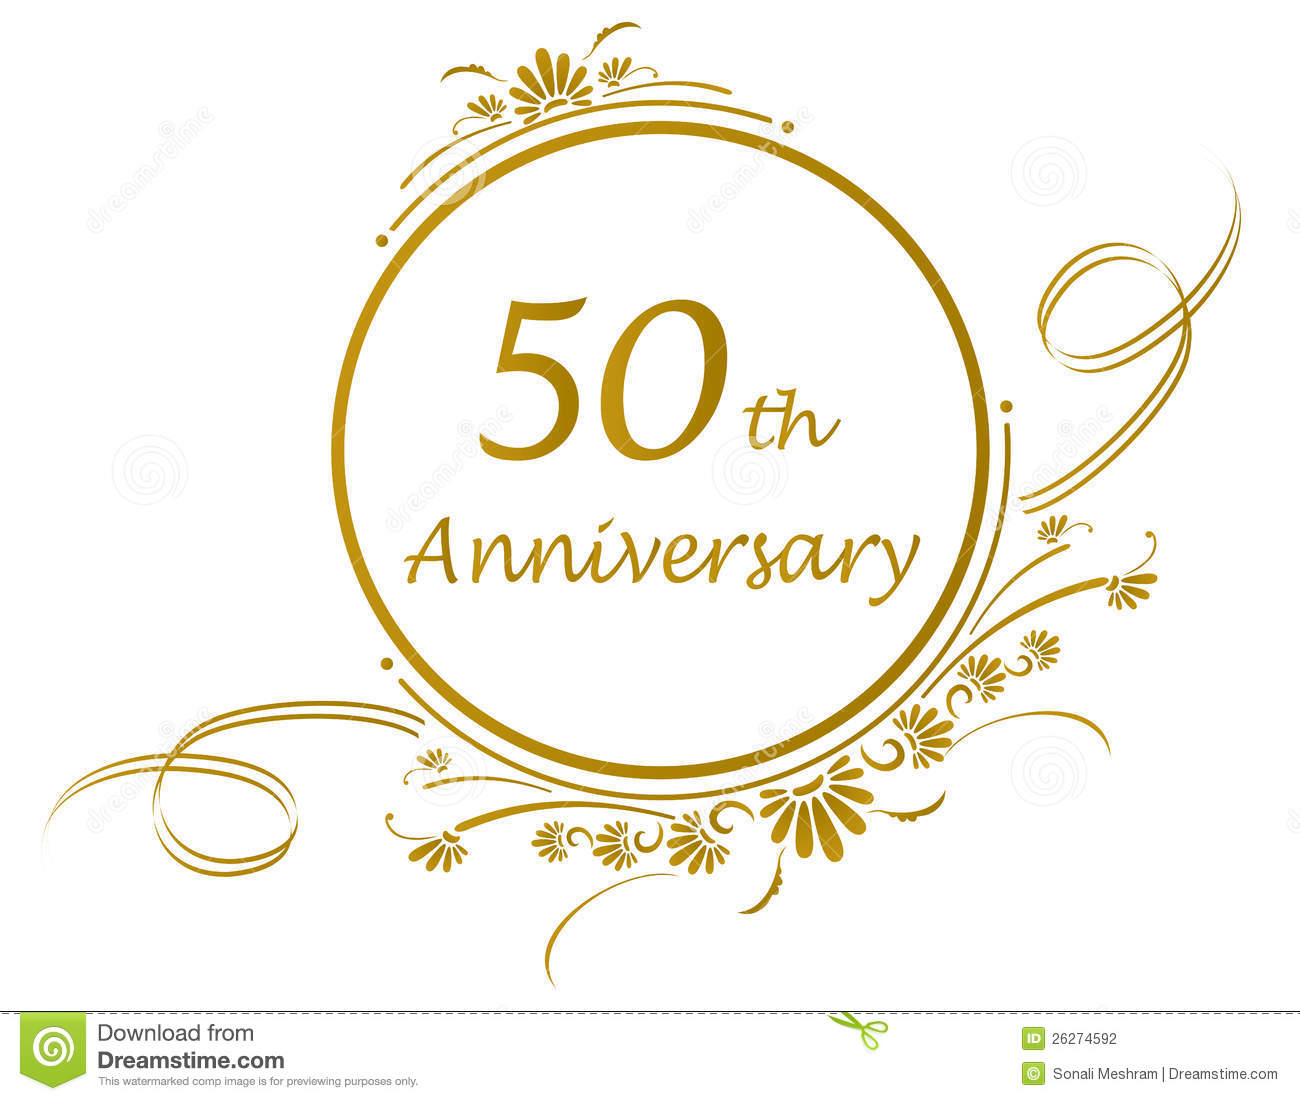 50th Or Golden Anniversary Of A Marriage-50th Or Golden Anniversary Of A Marriage Or Business Vector Available-11